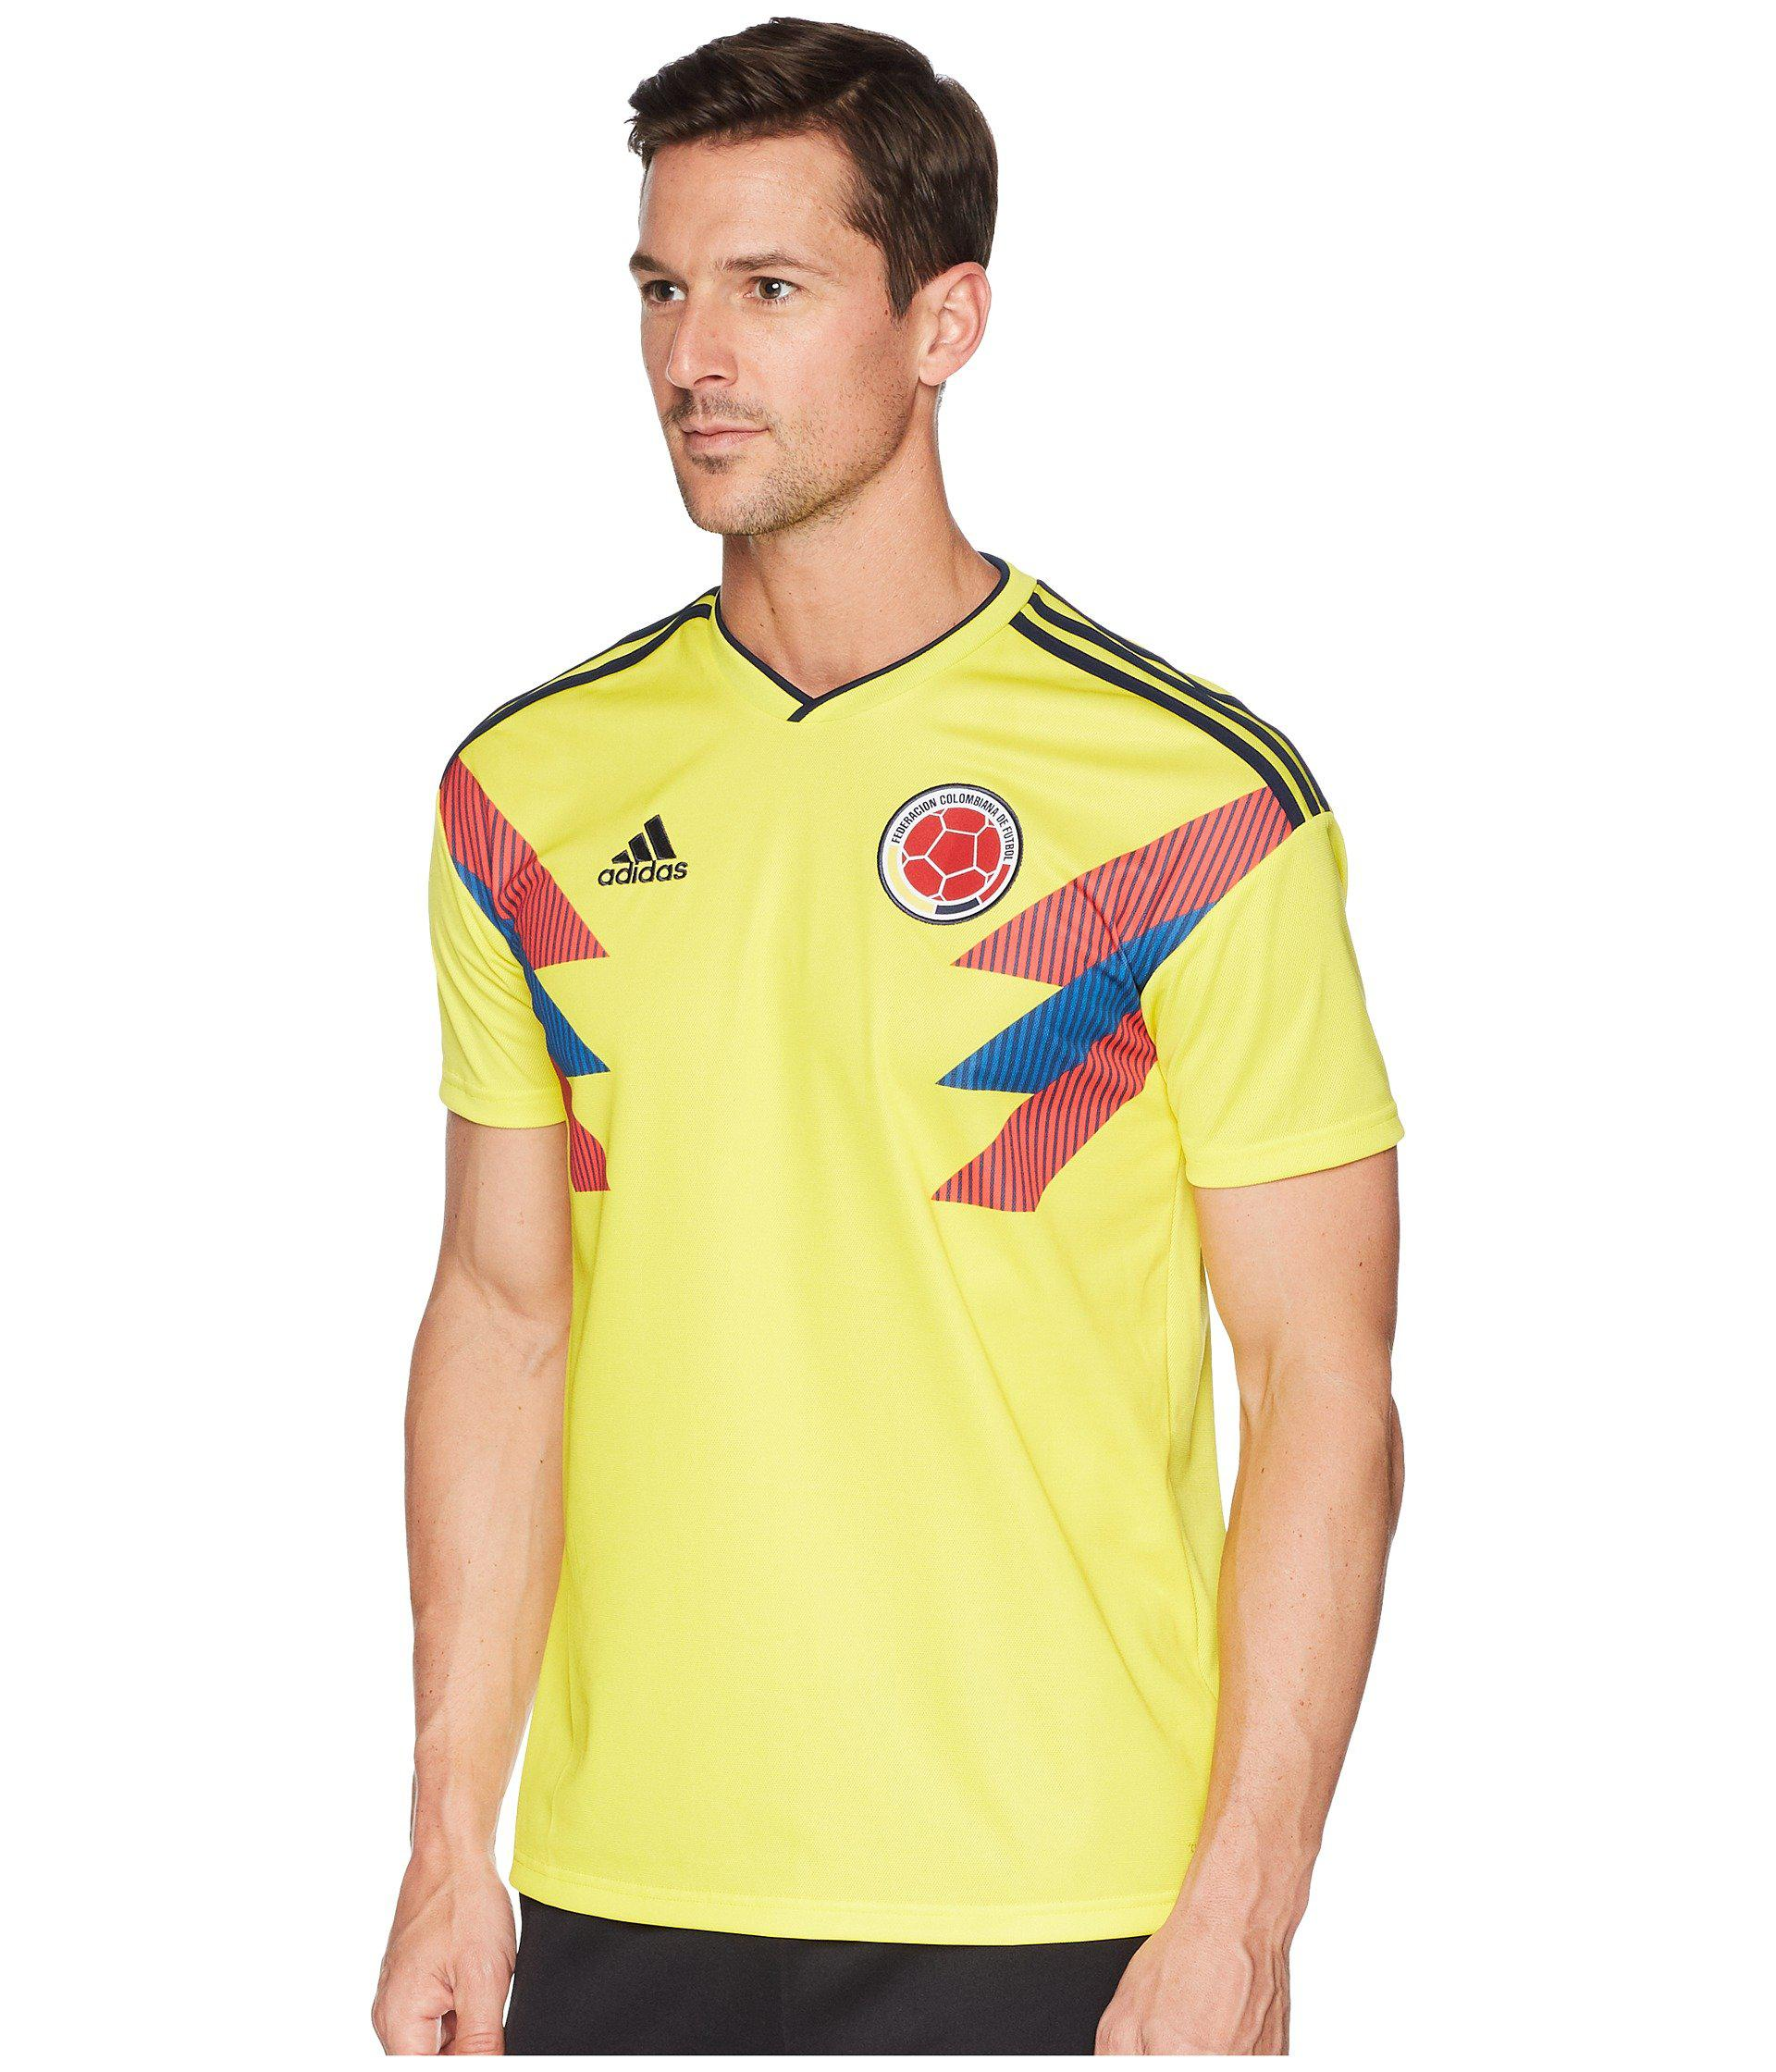 d2b5e6566 adidas 2018 Colombia Home Jersey in Yellow for Men - Lyst